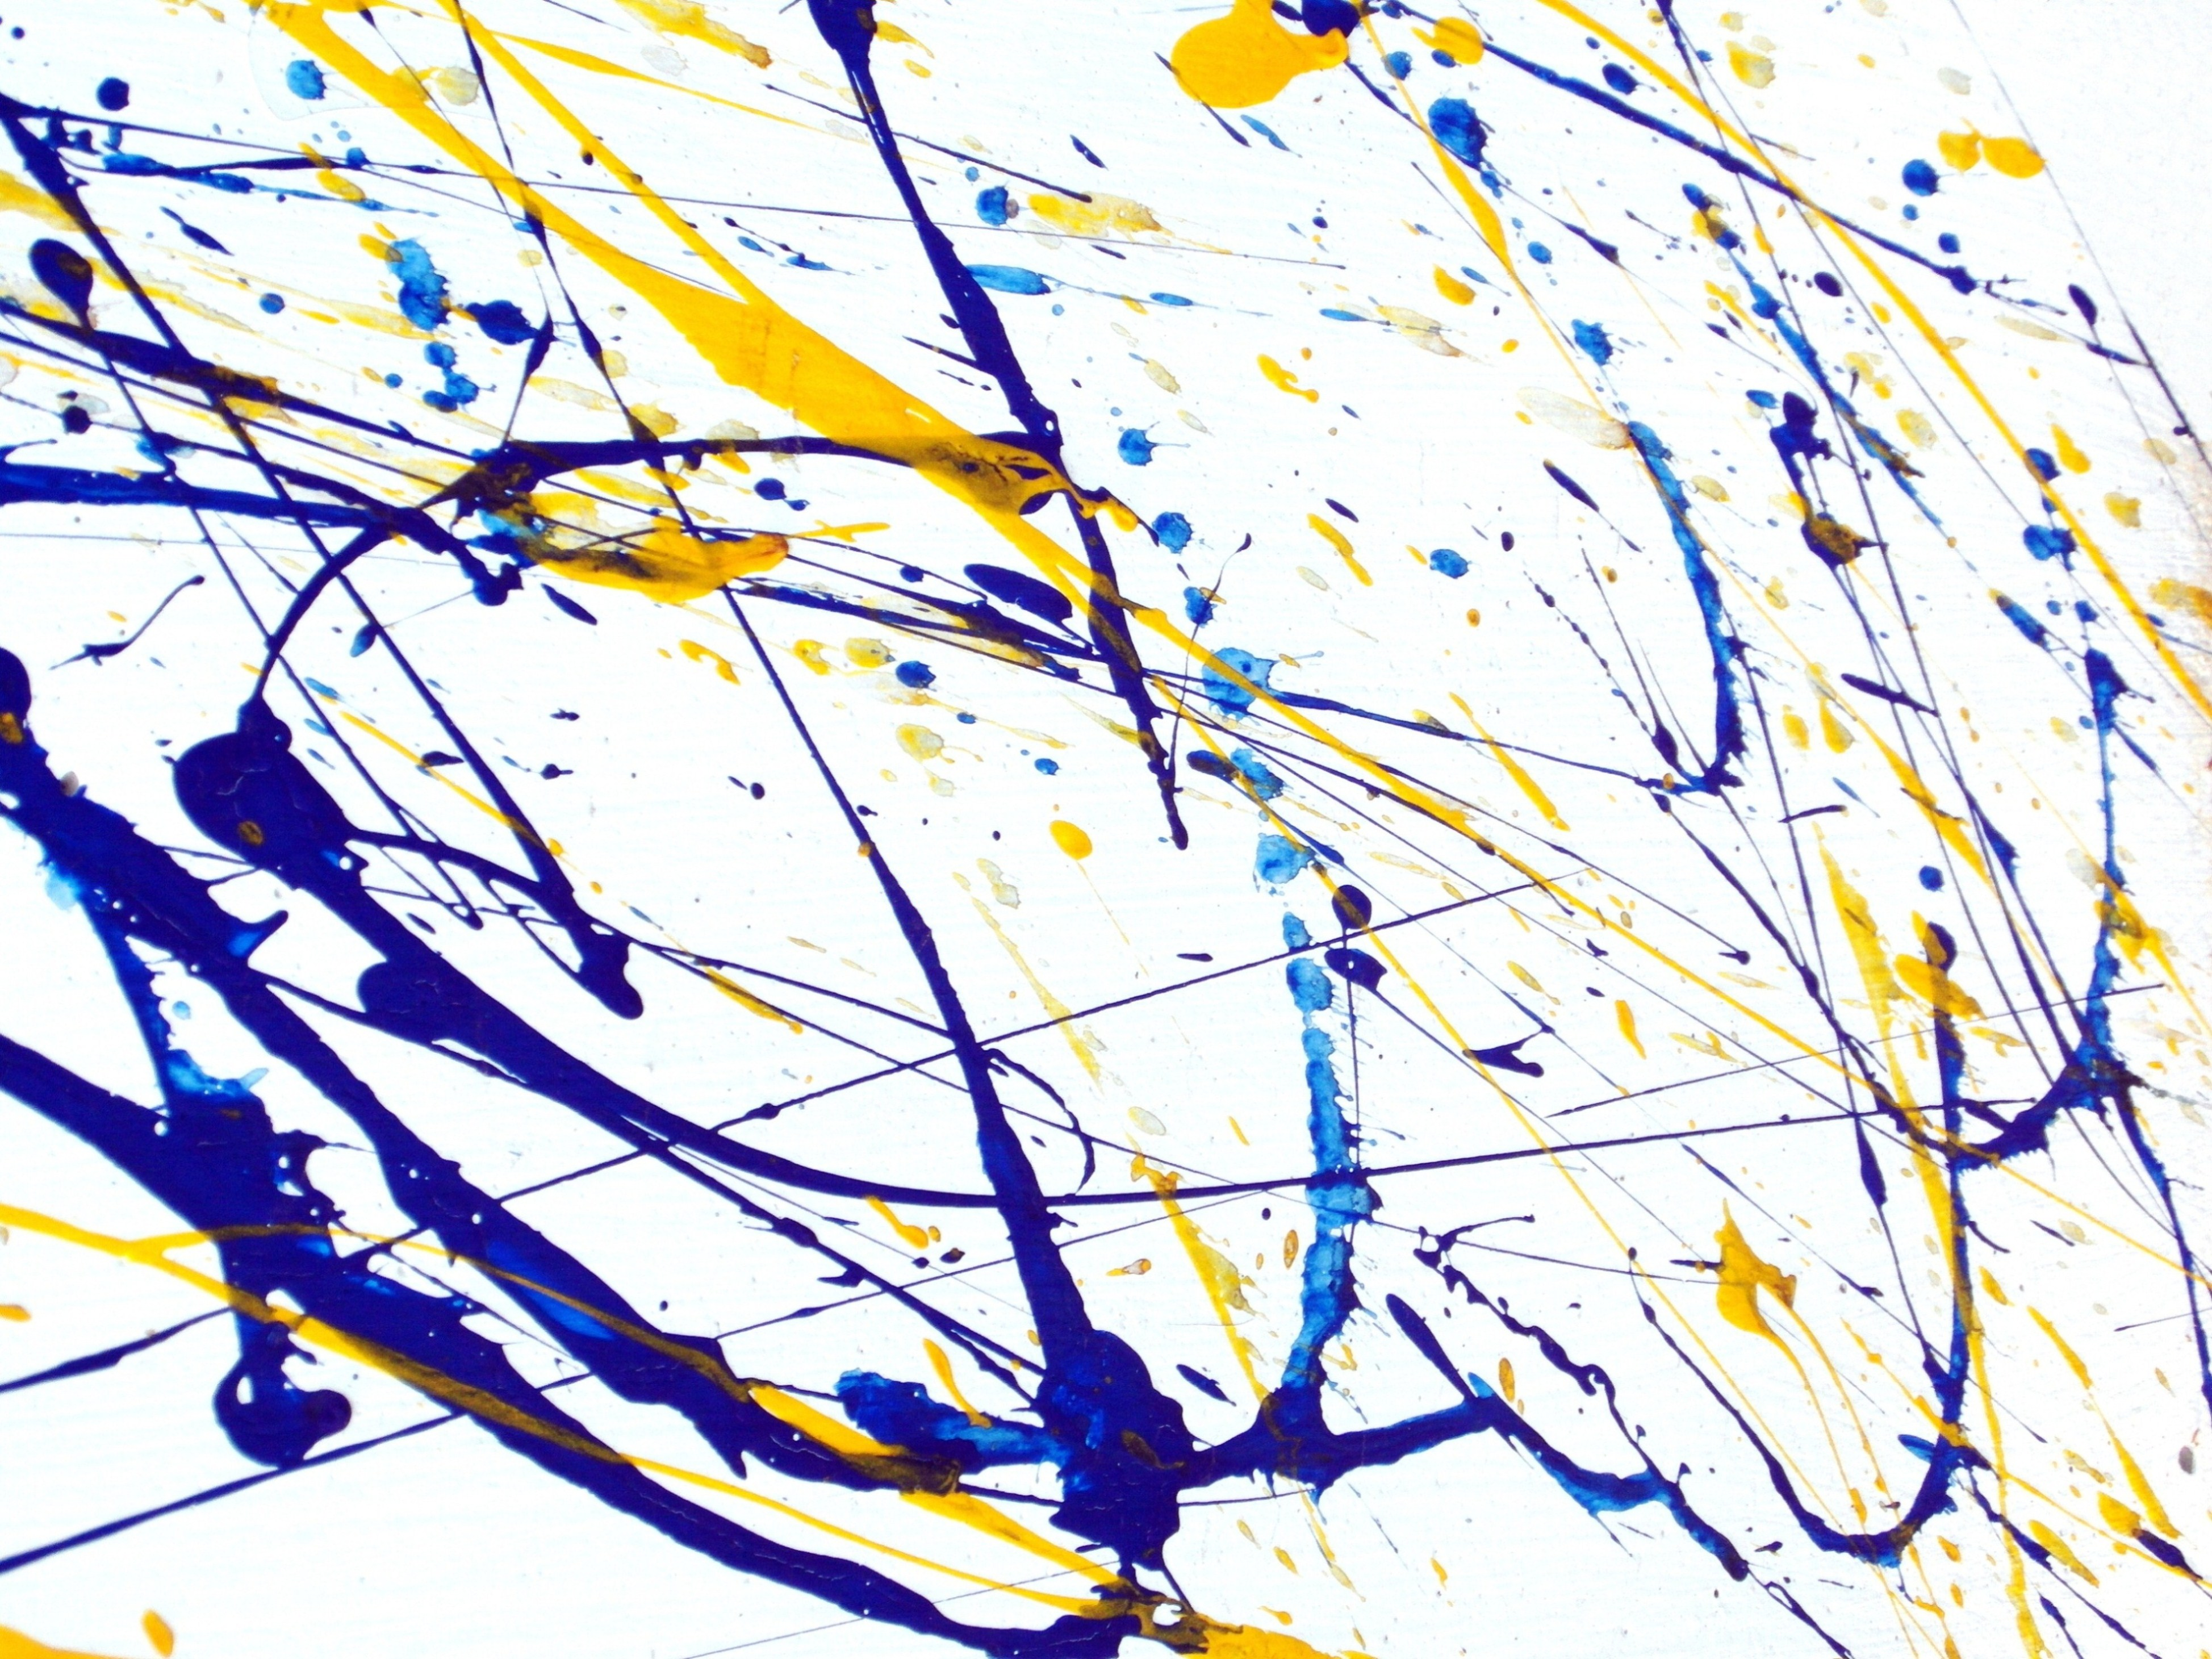 Paint Splatter Background, Abstract, Random, Isolated, Lines, HQ Photo